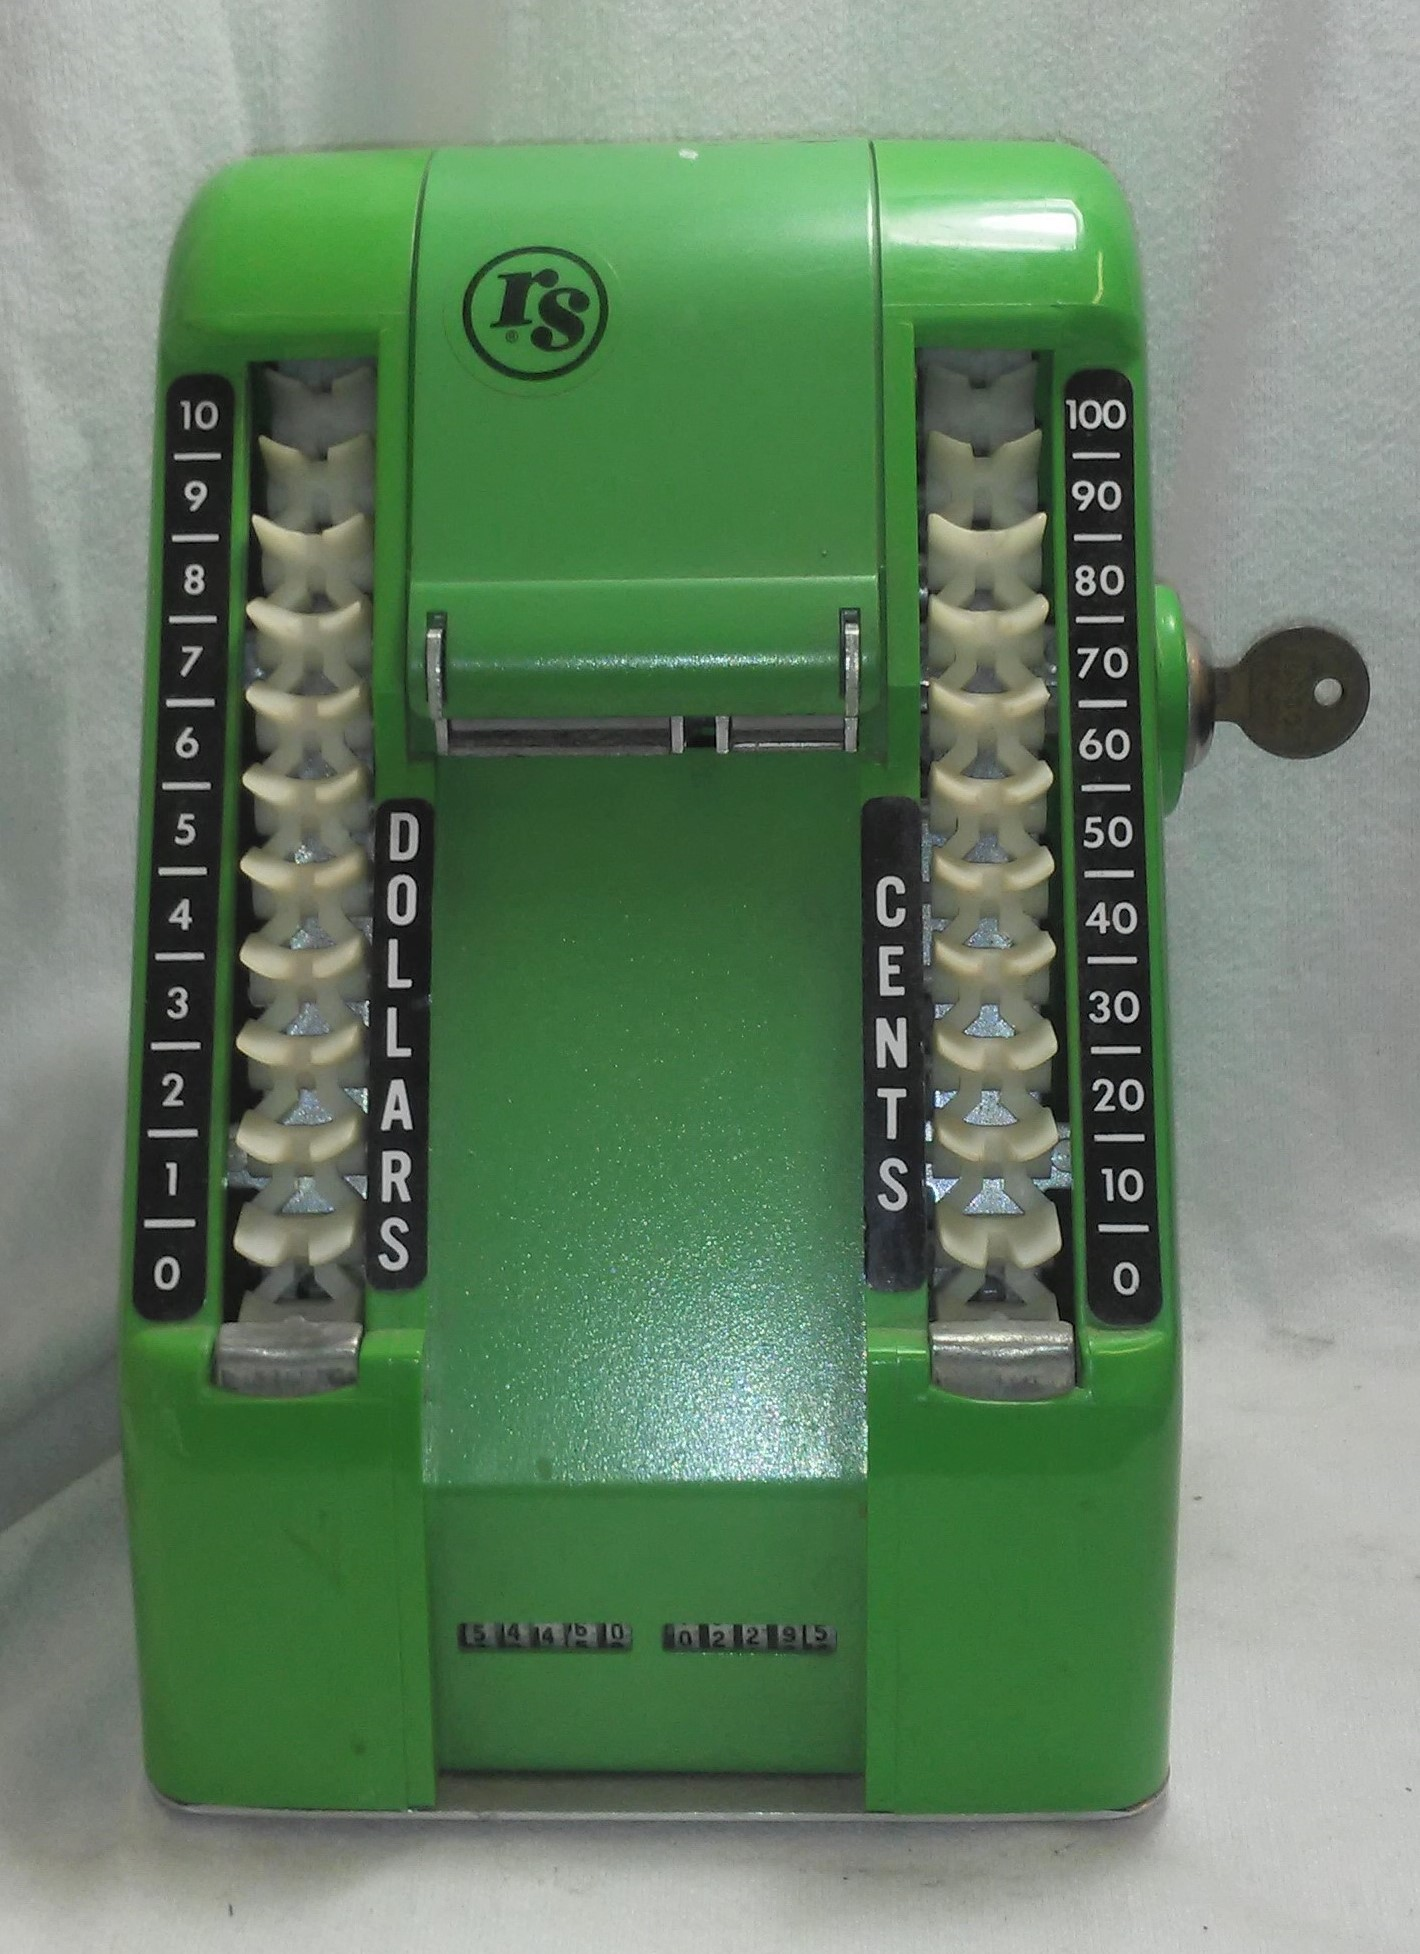 Antique S&H Green Stamps Vending Machine Dispenser For Sale- Key/Other Parts Included - Used